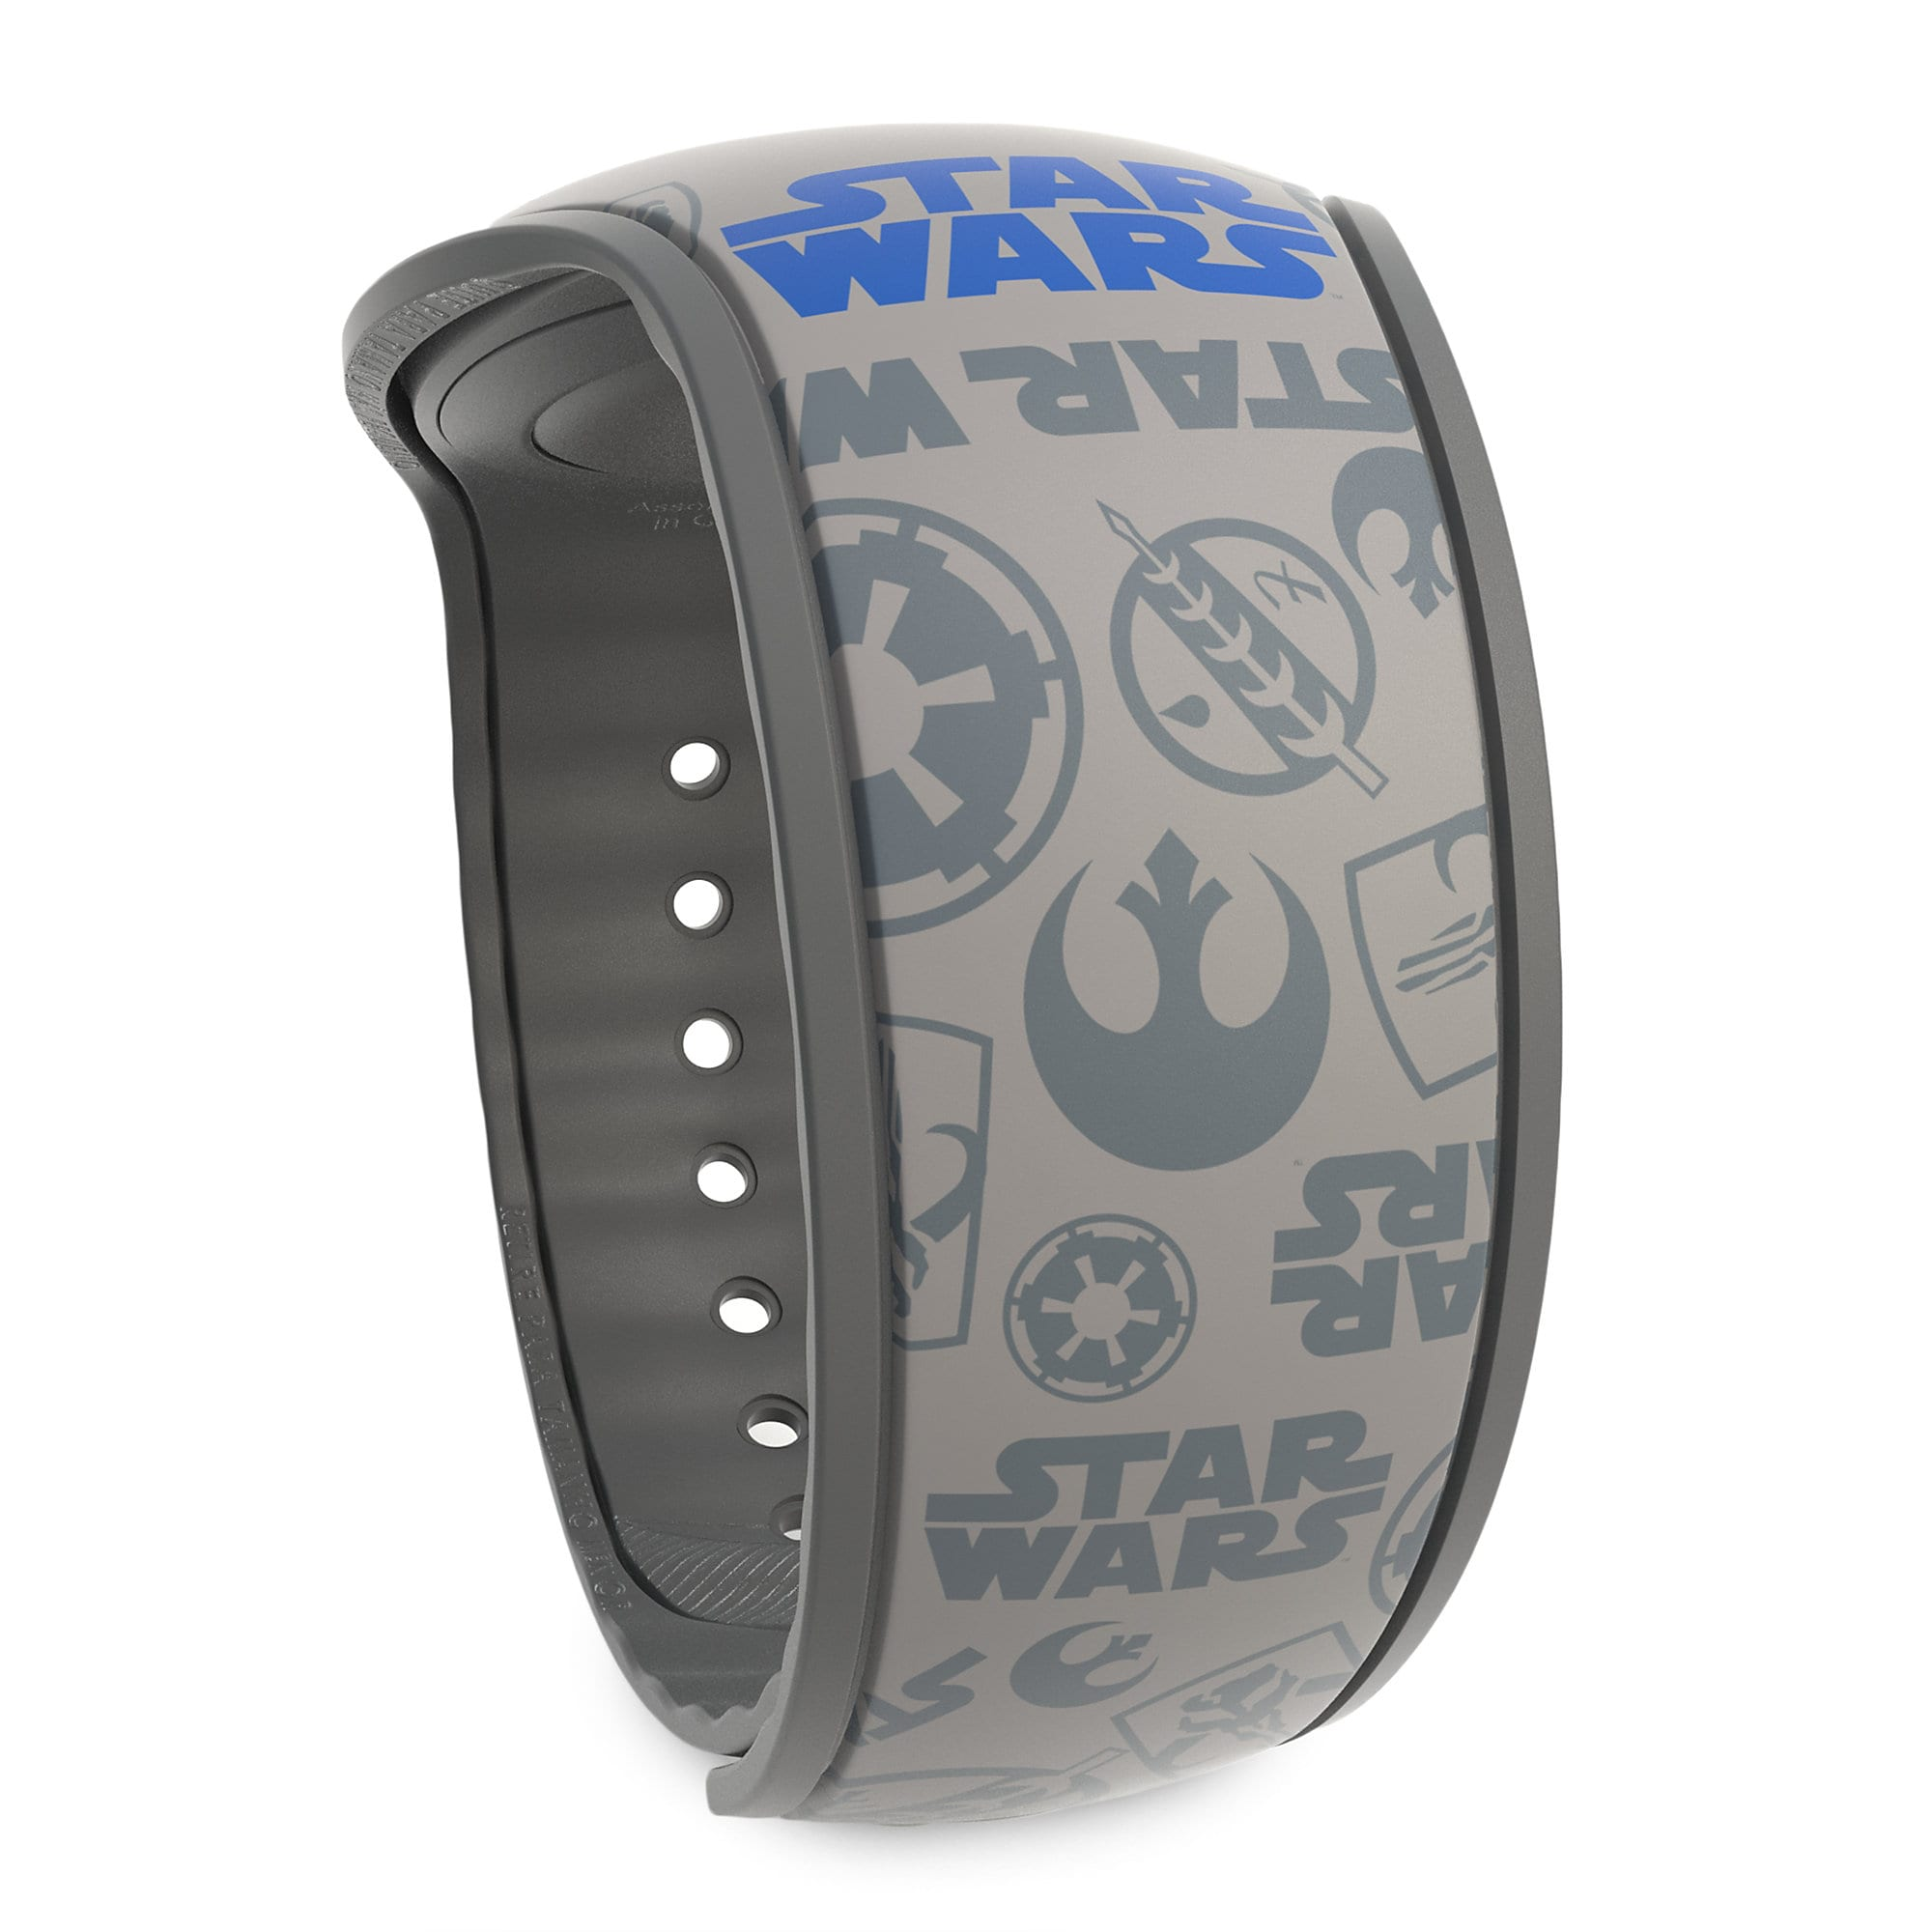 Star Wars Icons MagicBand 2 - Limited Release